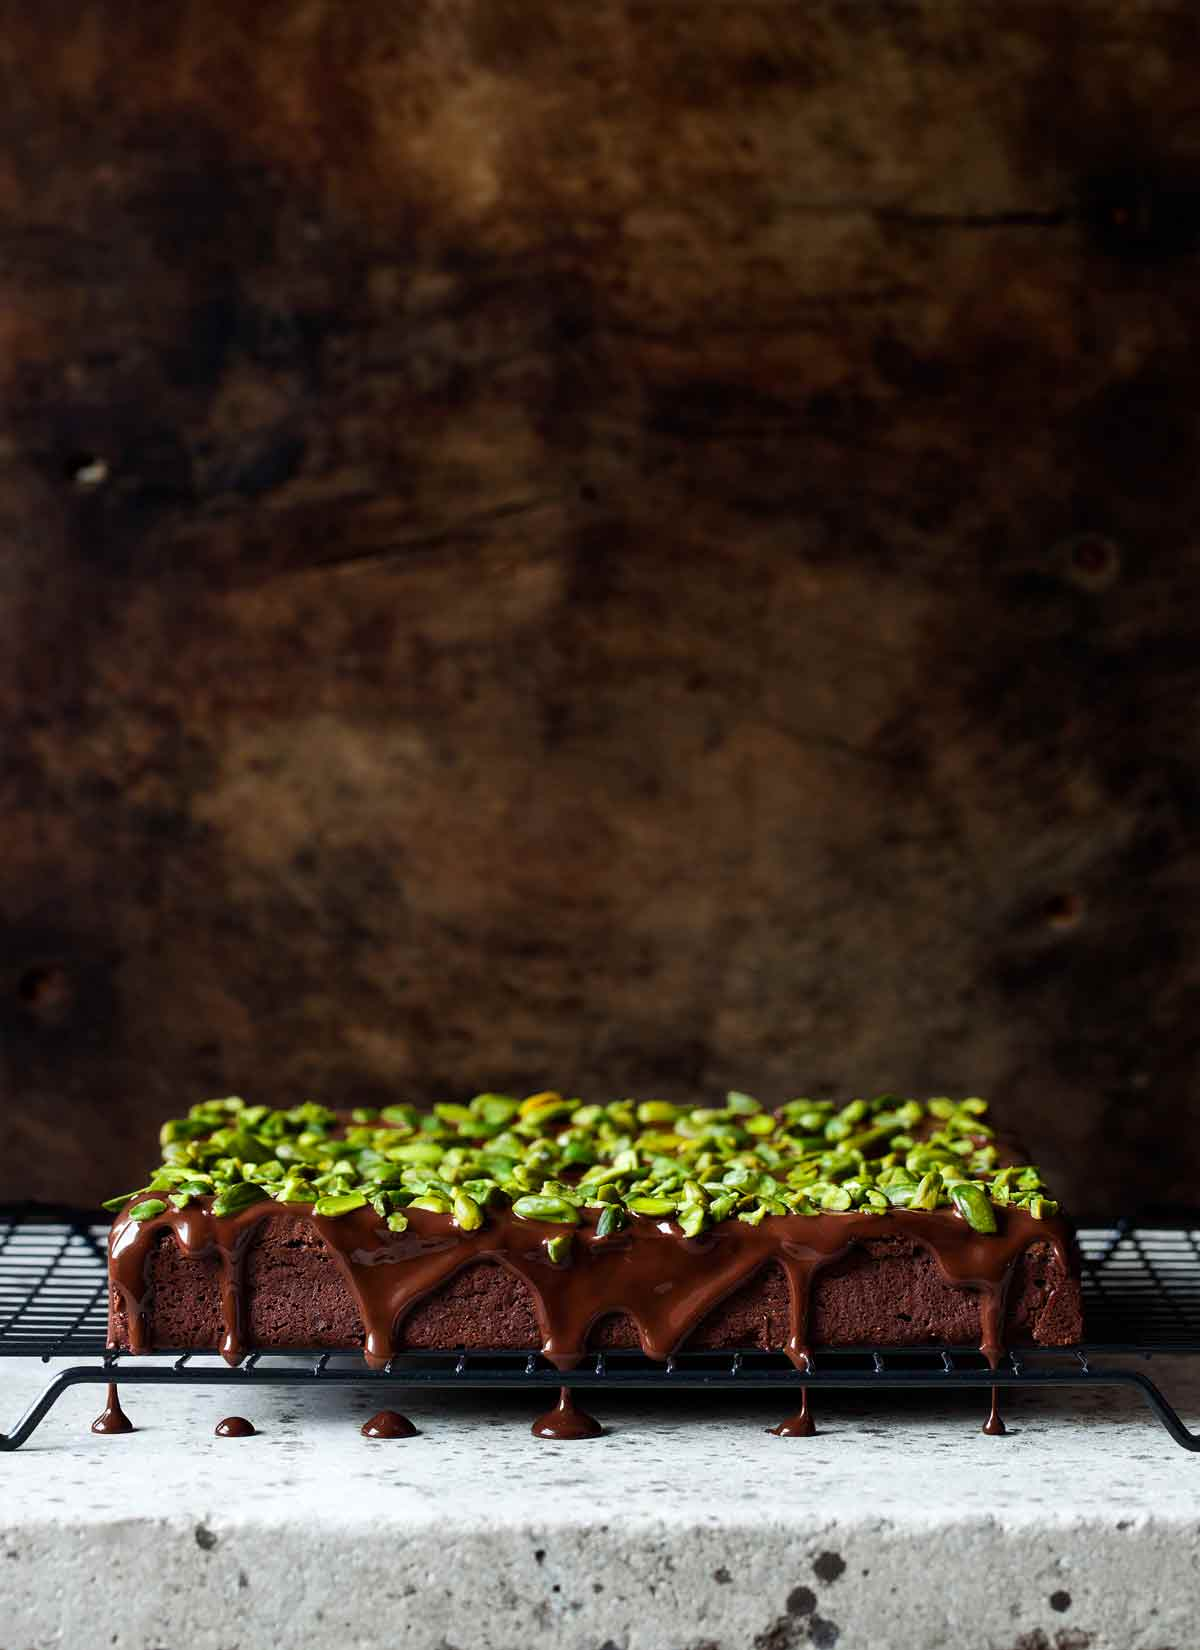 A slab of chocolate brownies with chocolate drizzle and chopped pistachios made by Cenk Sönmezsoy on a wire rack.